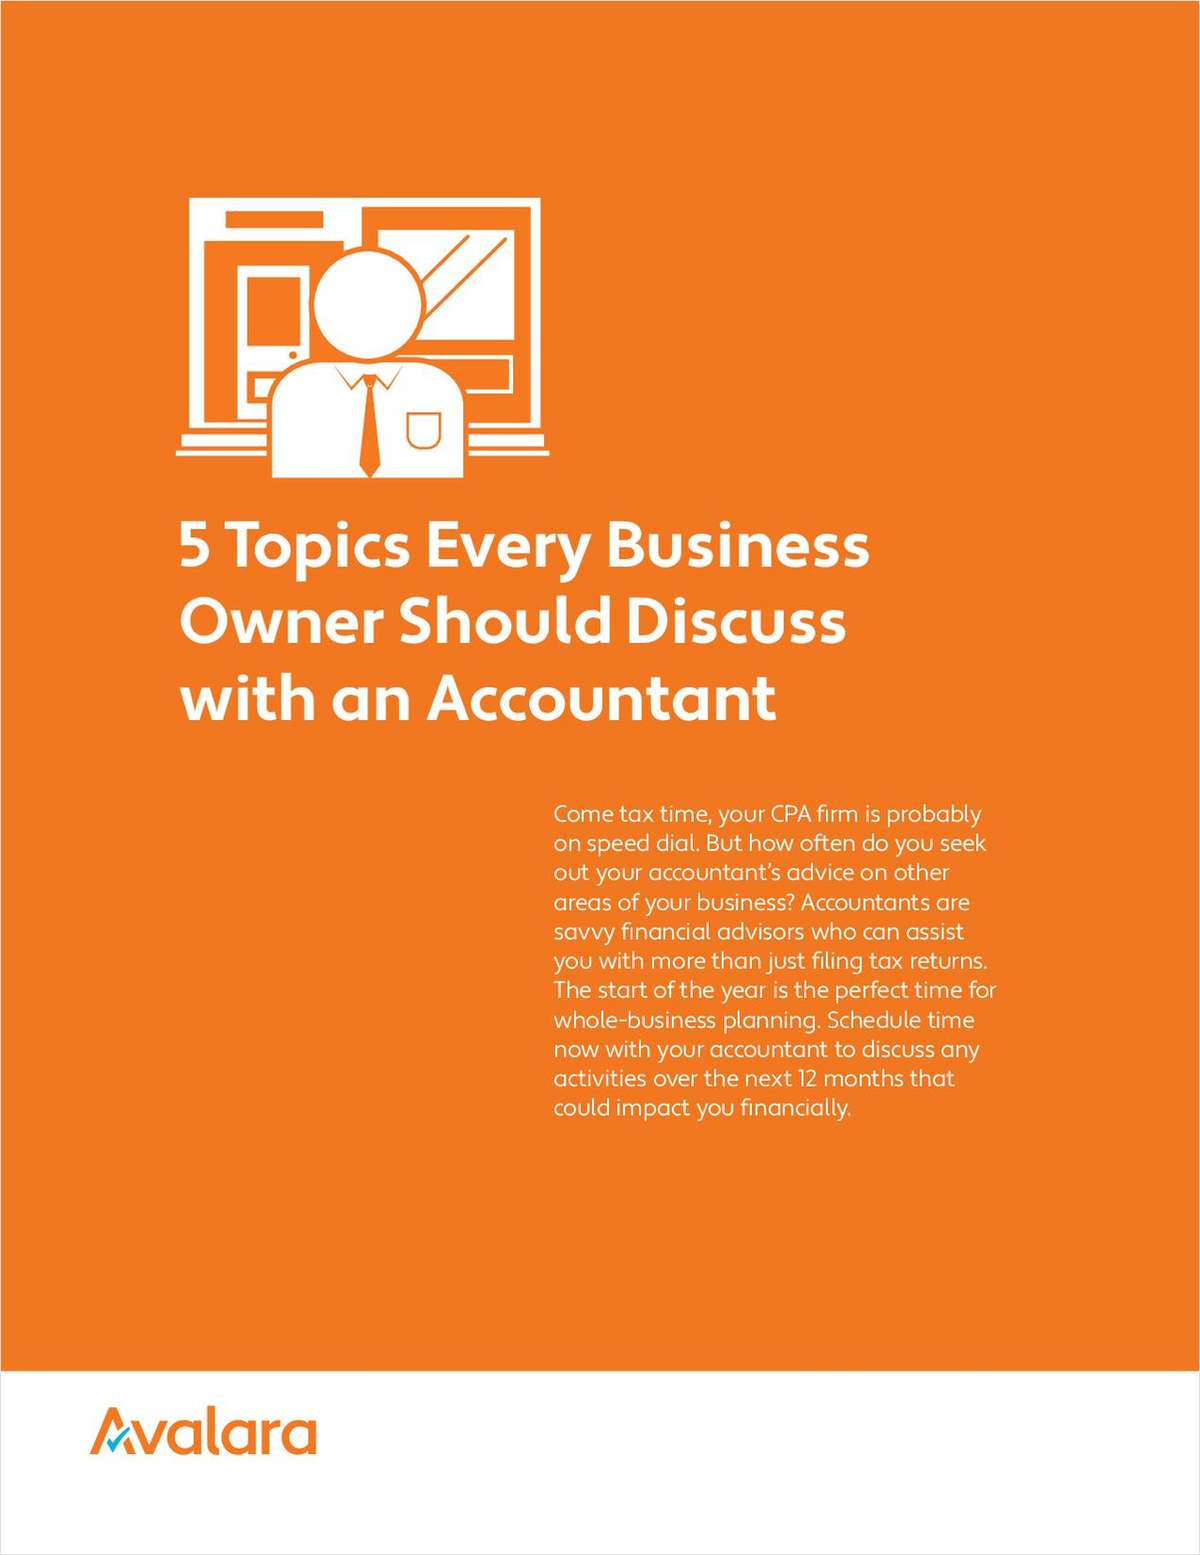 5 Topics Every Business Owner Should Discuss with an Accountant